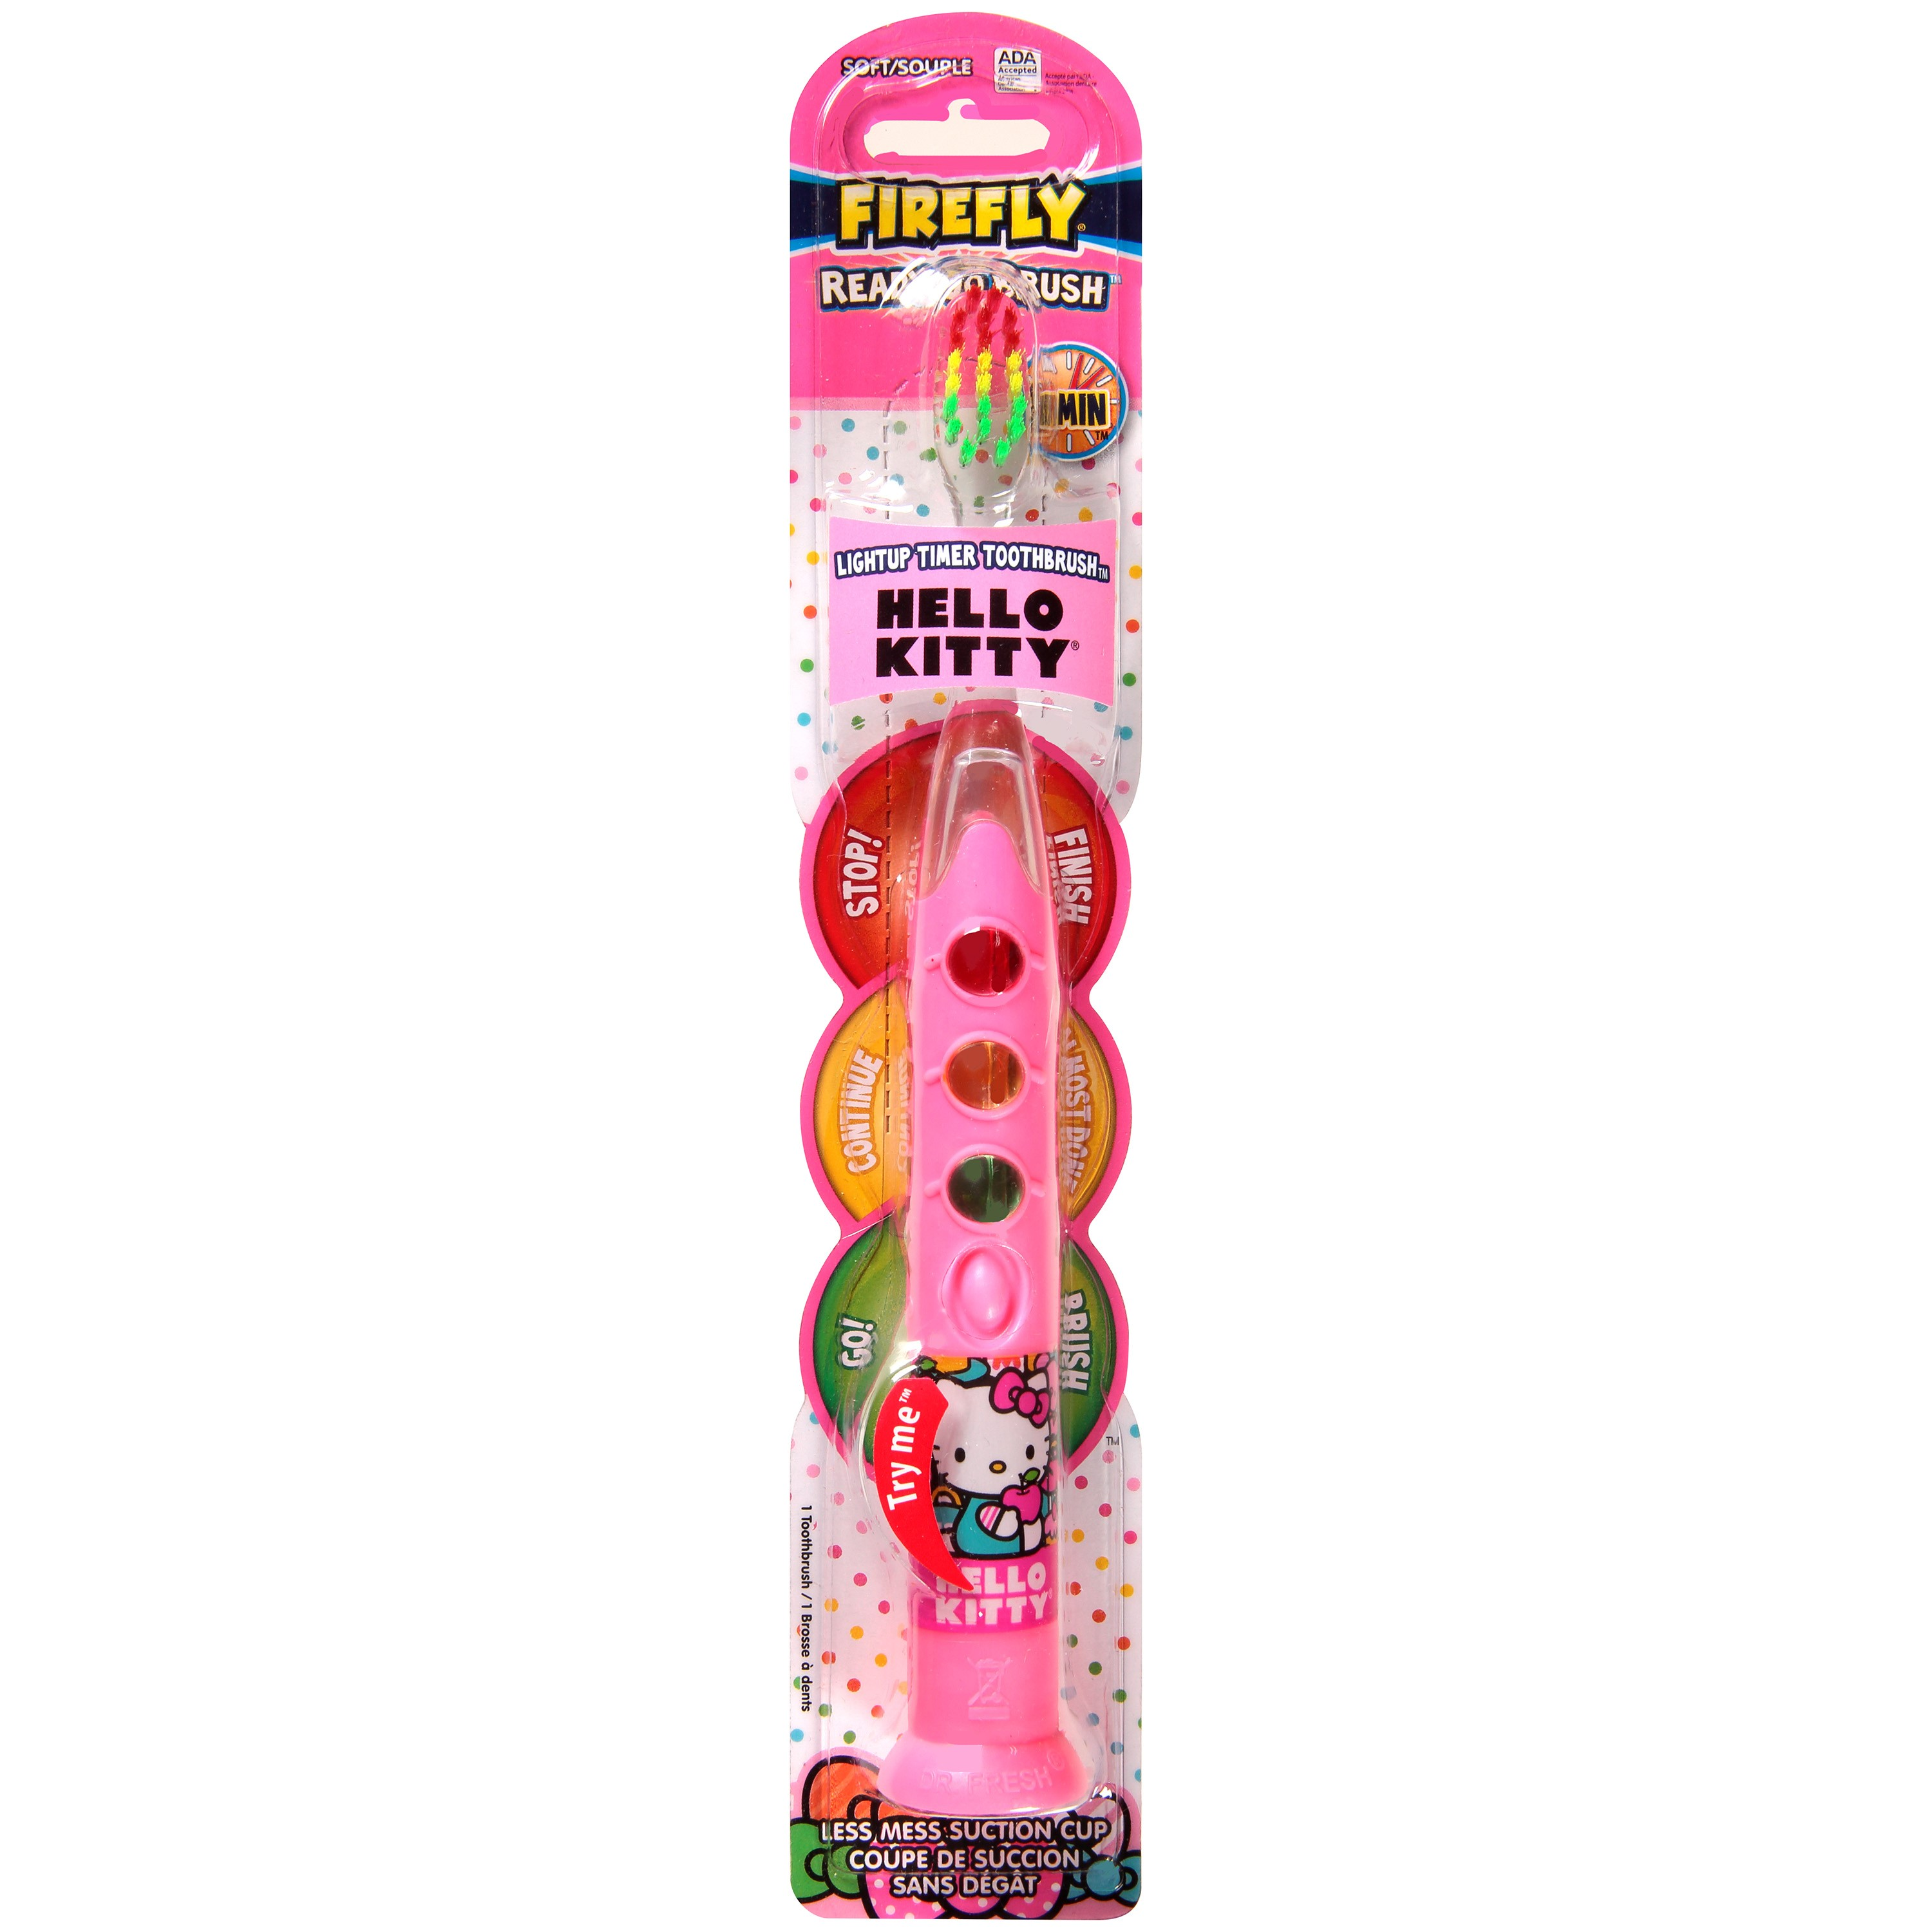 Firefly Ready Go Brush Hello Kitty Soft Light Up Timer Toothbrush